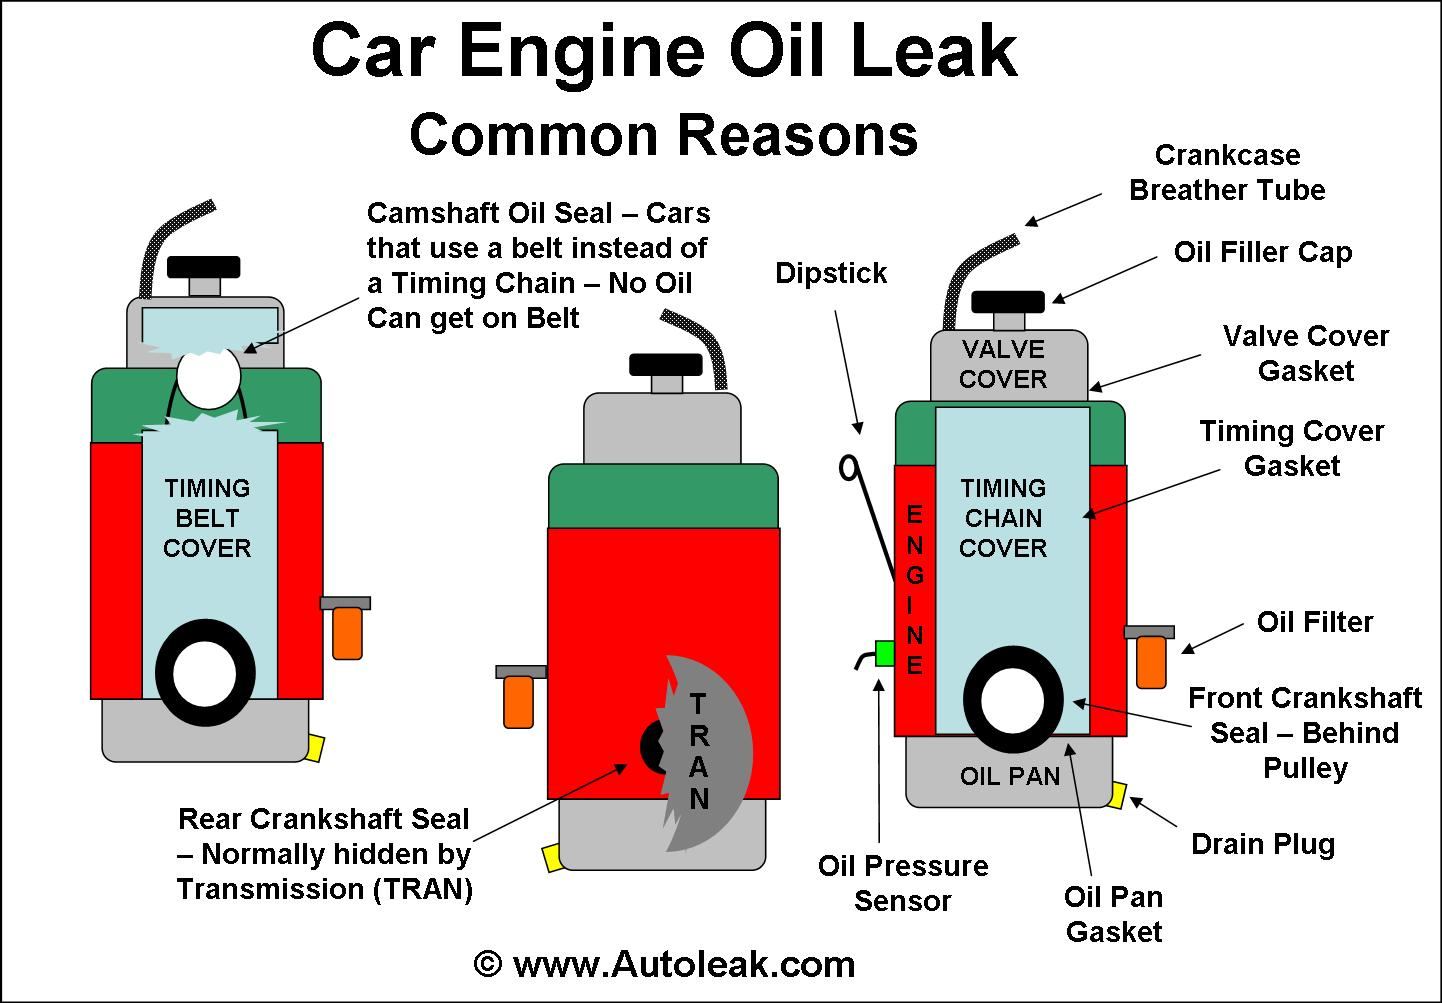 Car Engine Oil Leak, Leaking Oil